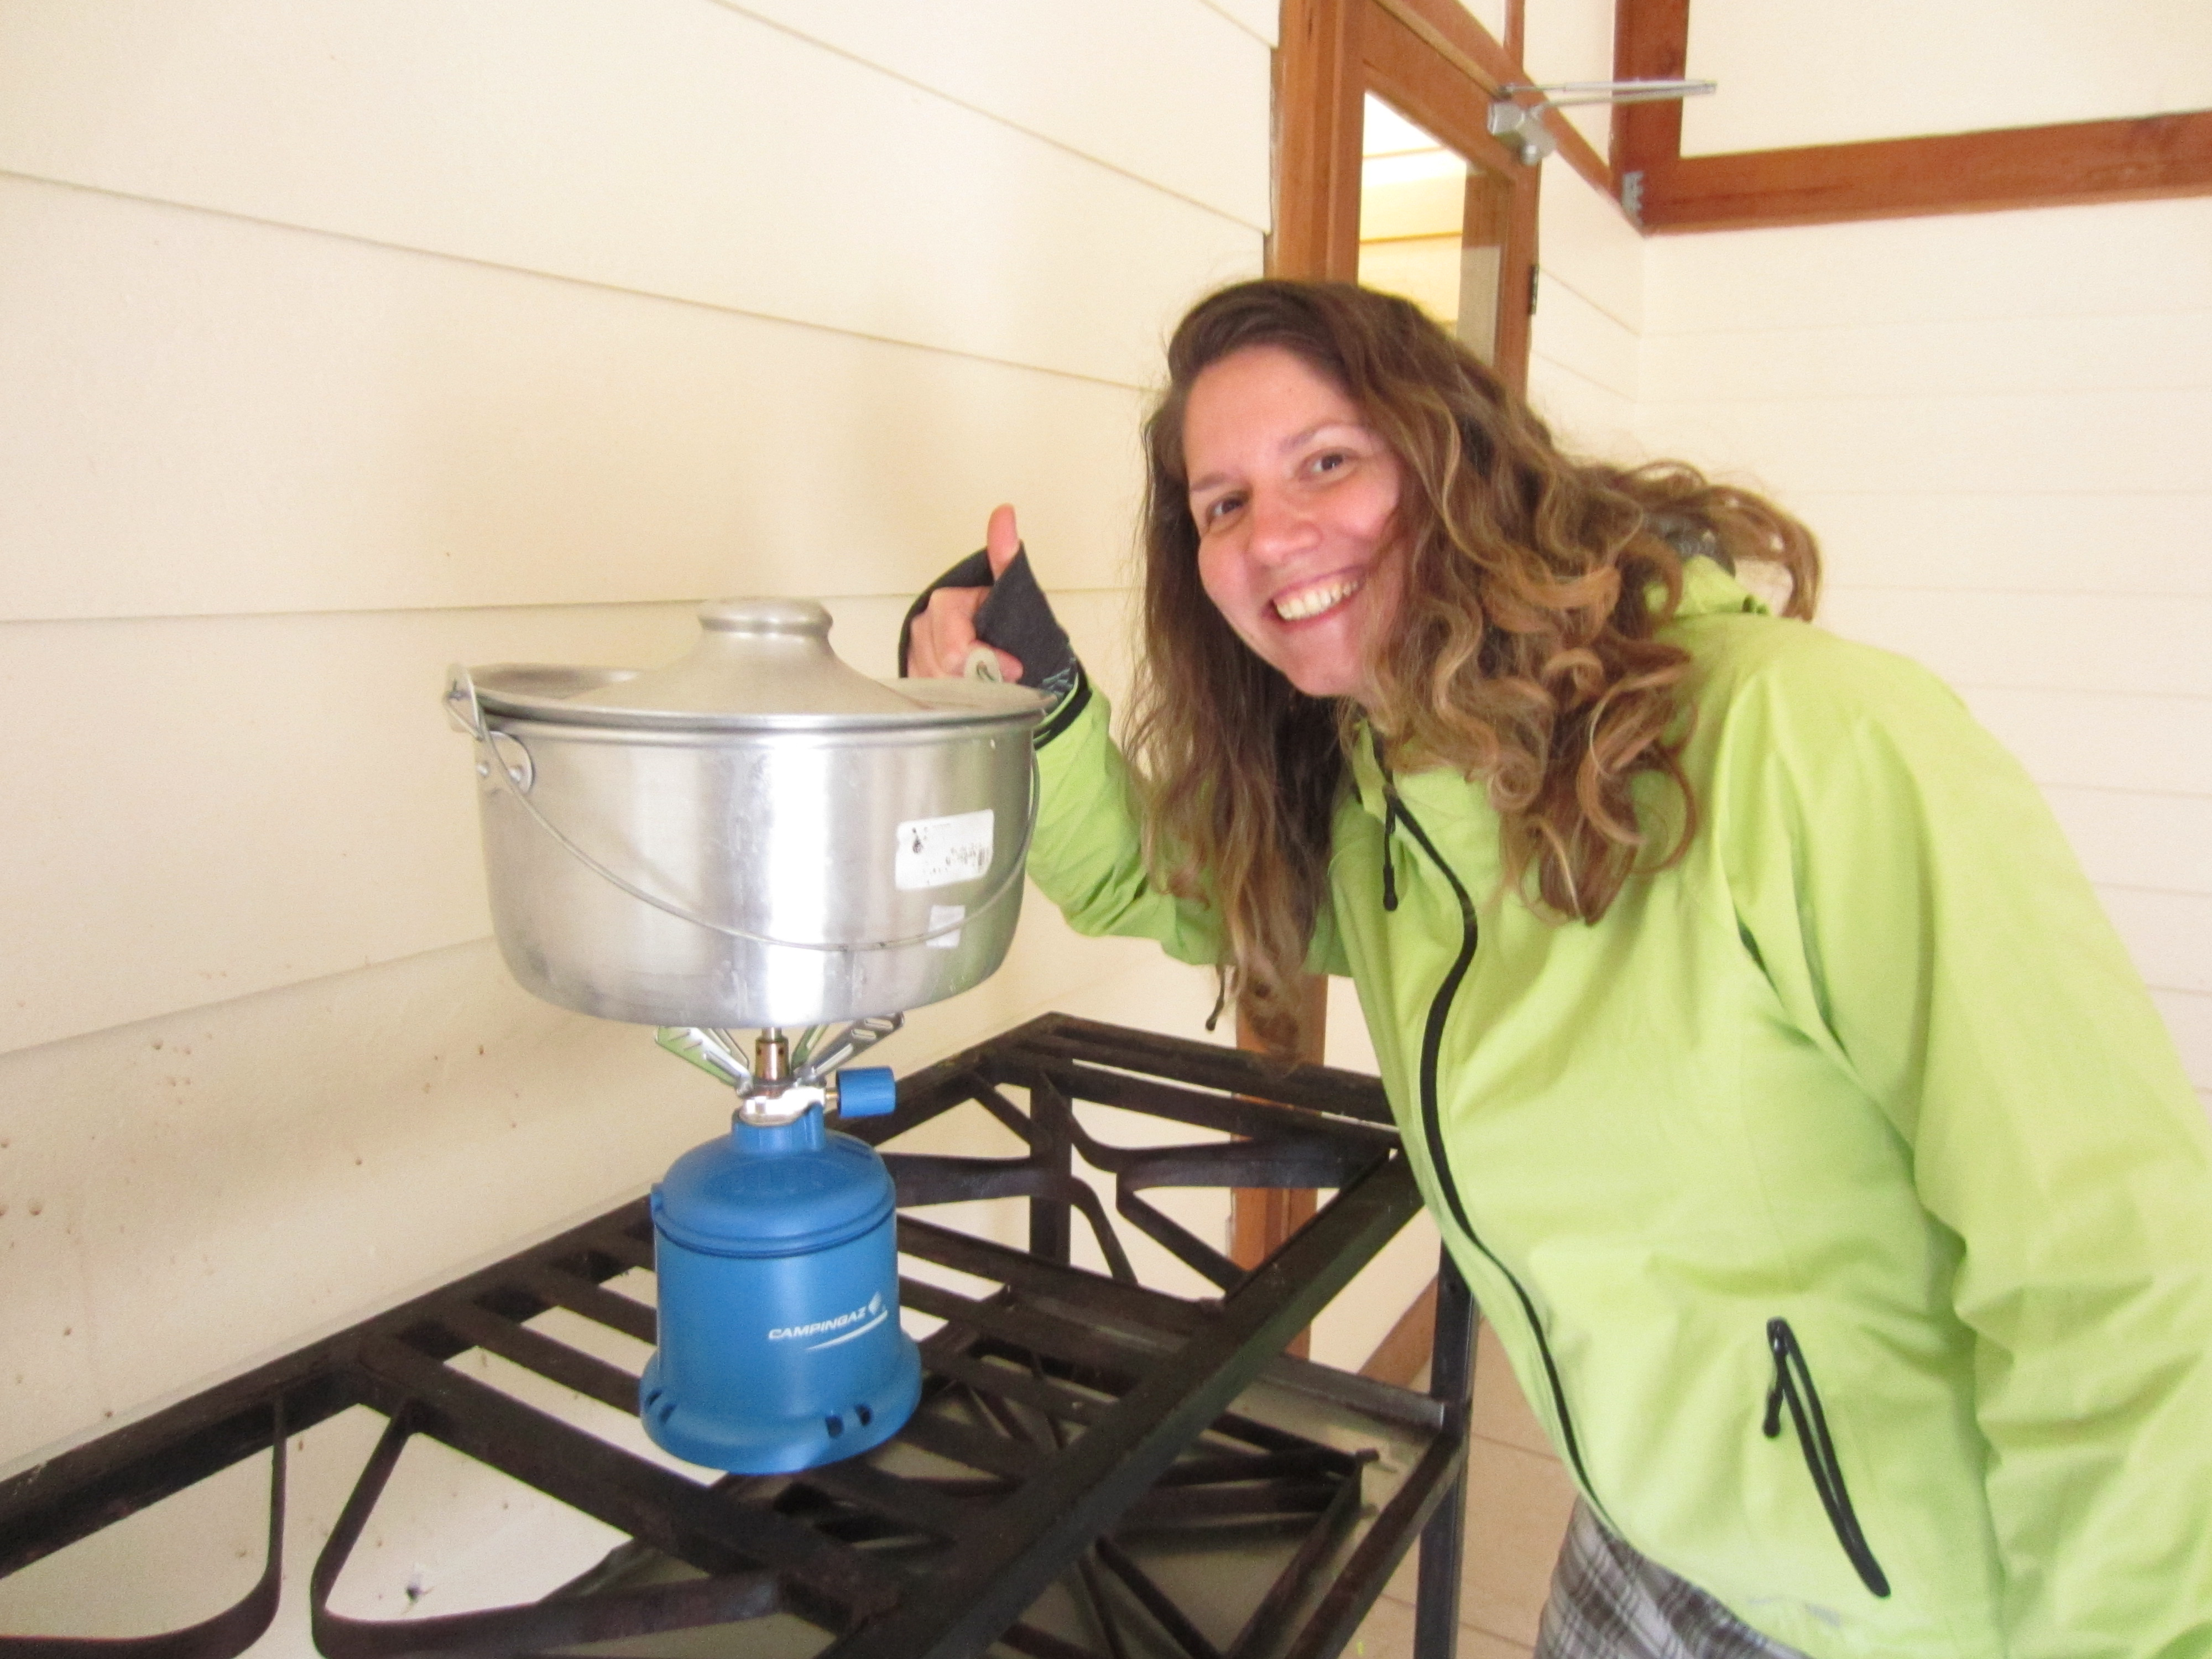 Dinner at Crestones base lodge; pasta and portable stove